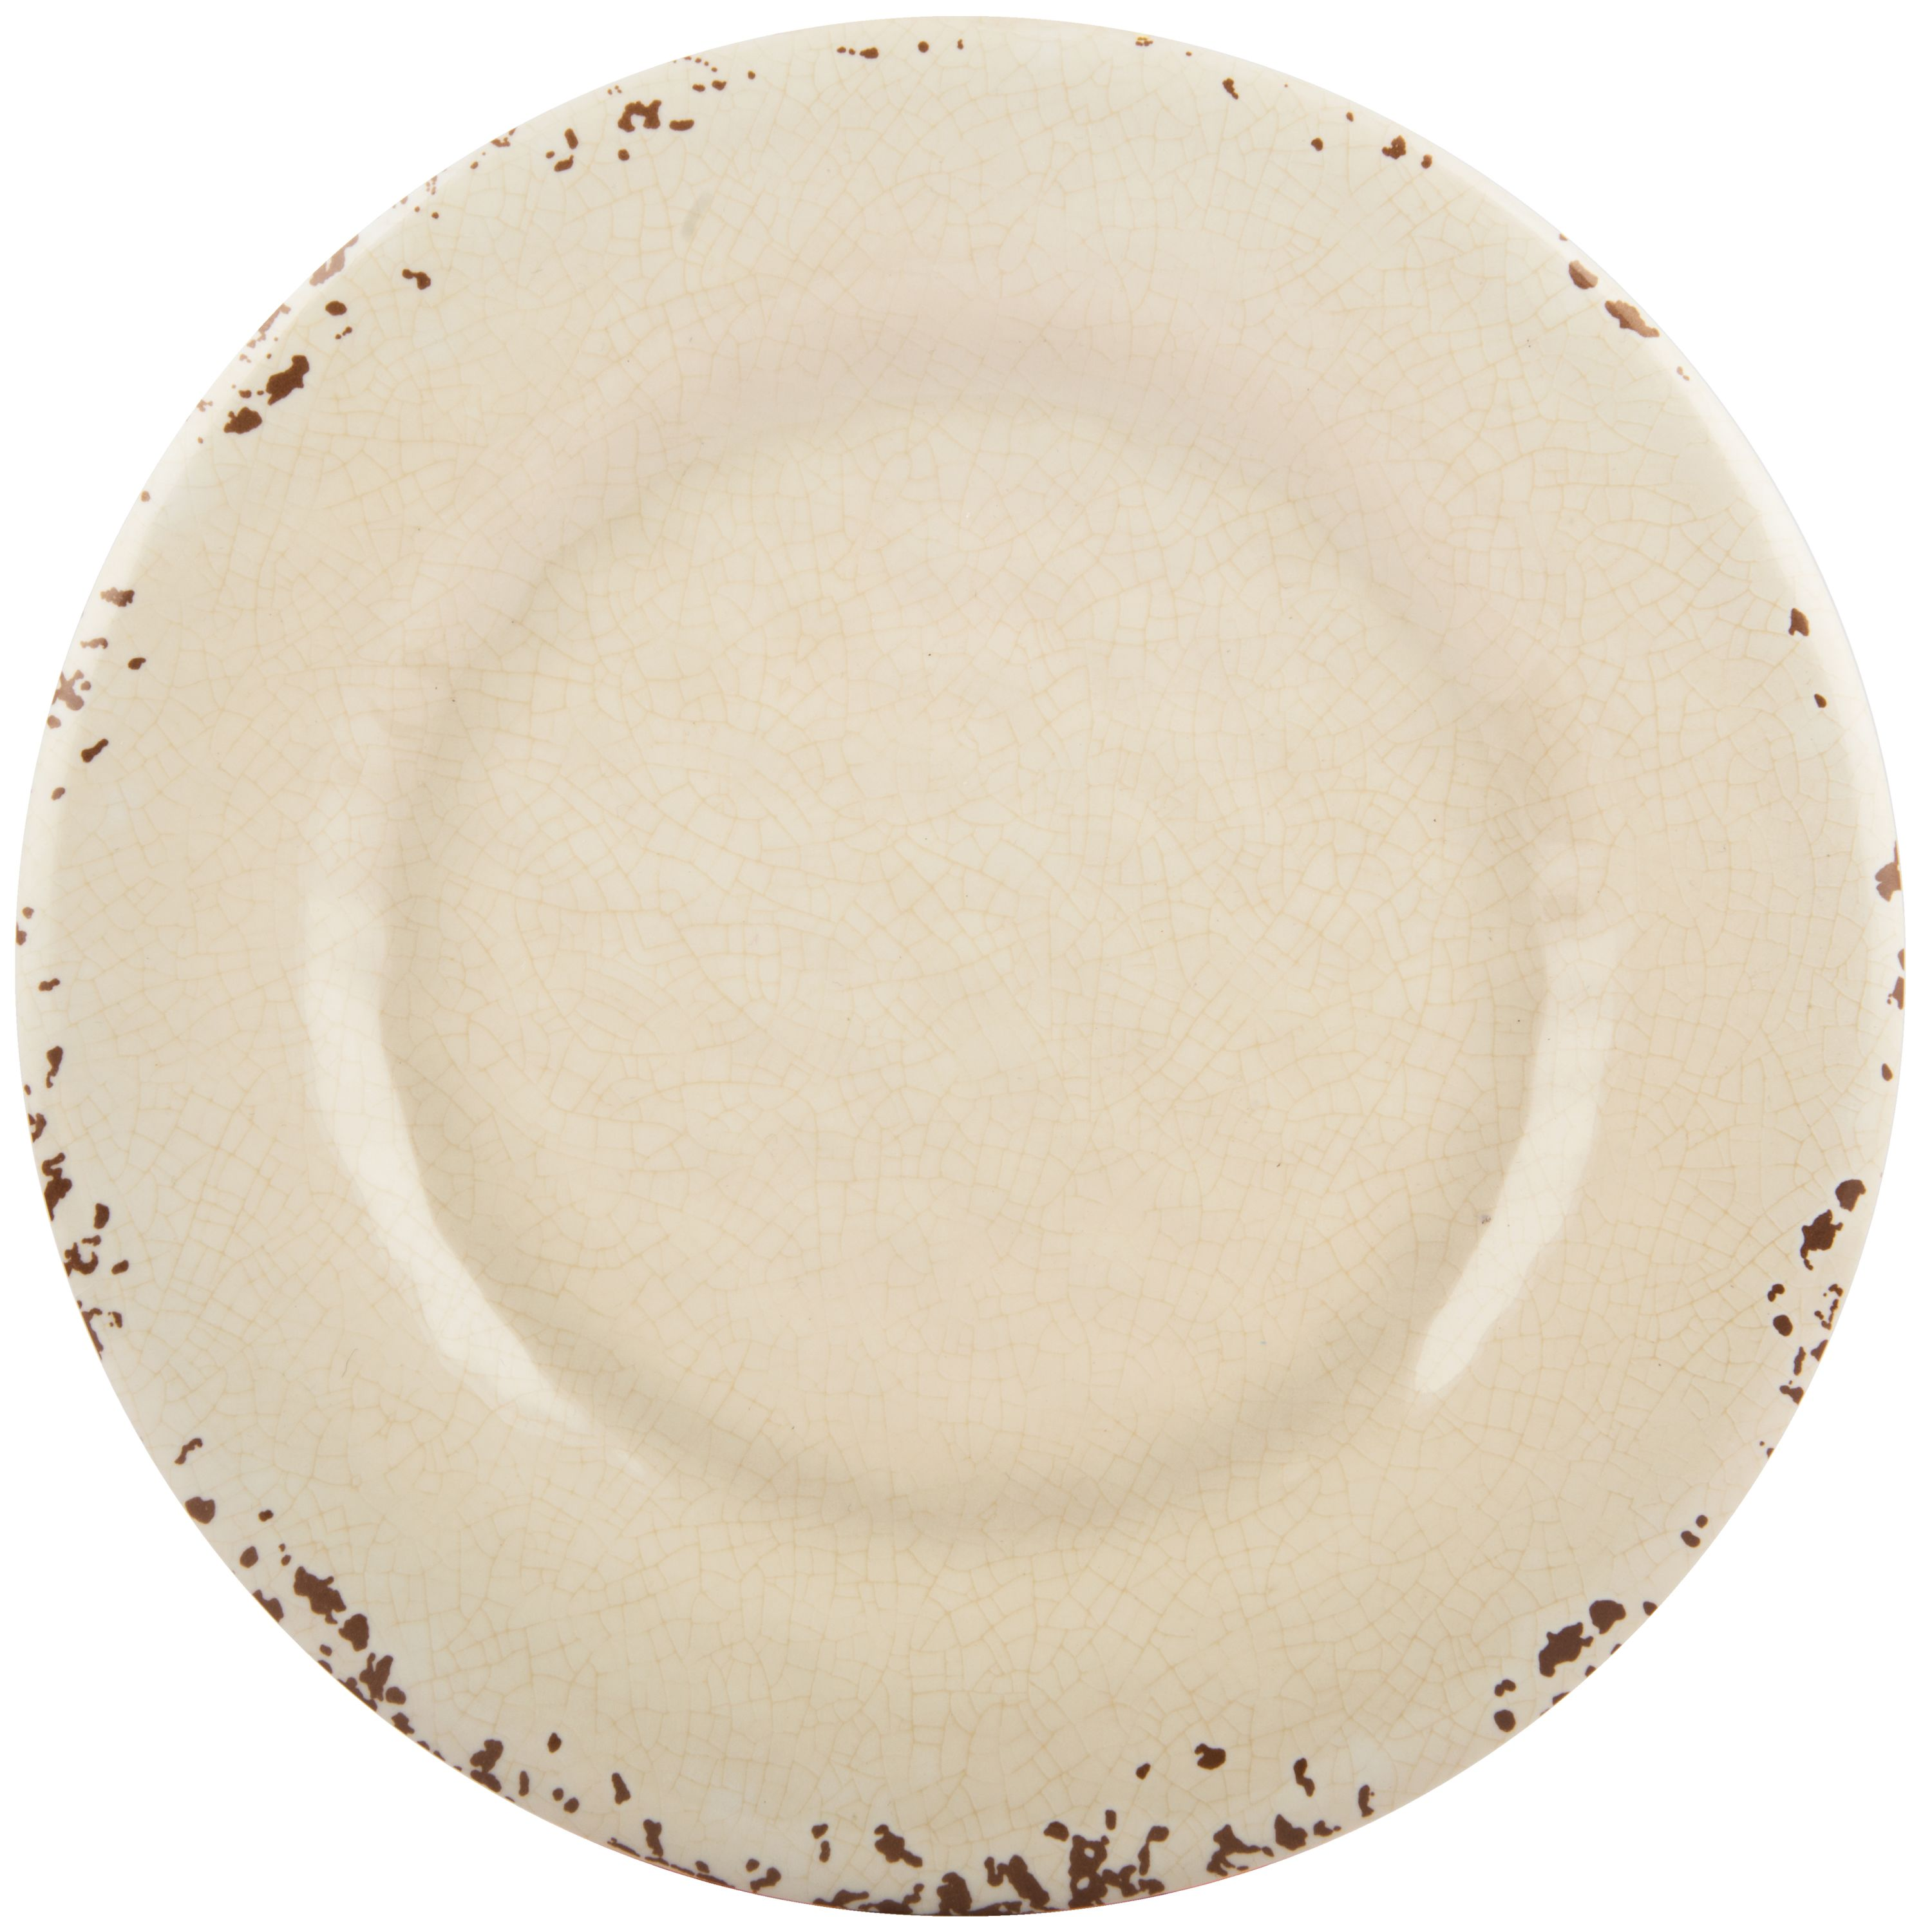 Melange 6 Piece Melamine Dinner Plate Set Rustic Collection White Walmart Com Walmart Com